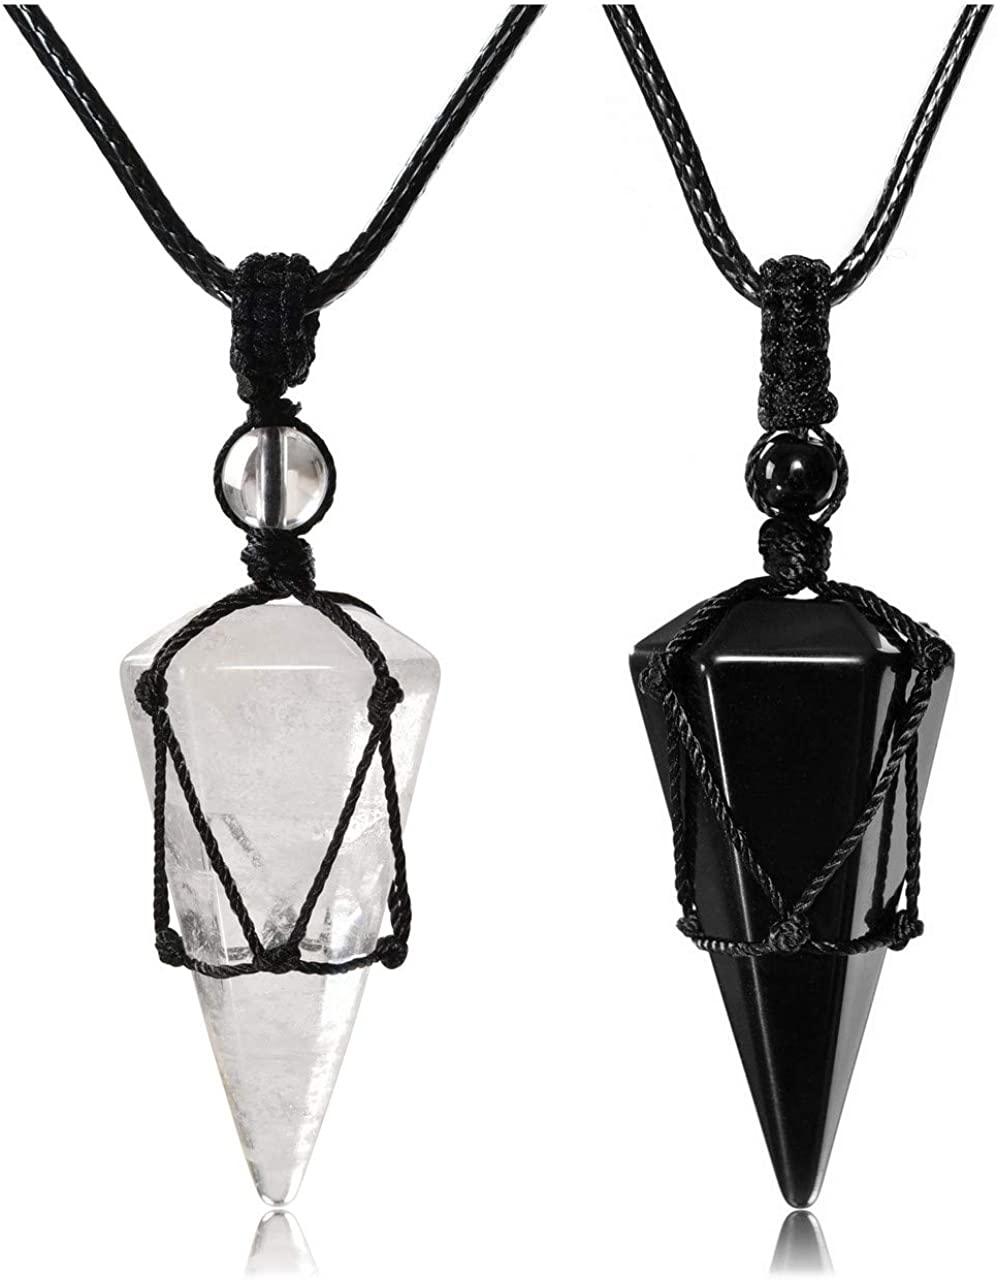 Couple Pendant Necklaces Black Obsidian Clear Quartz Crystal Dowsing Pendulums Divination Healing Necklaces Cord Adjustable Natural Gemstone Hexagonal Pointed Cone Reiki Chakra Pendant Gift